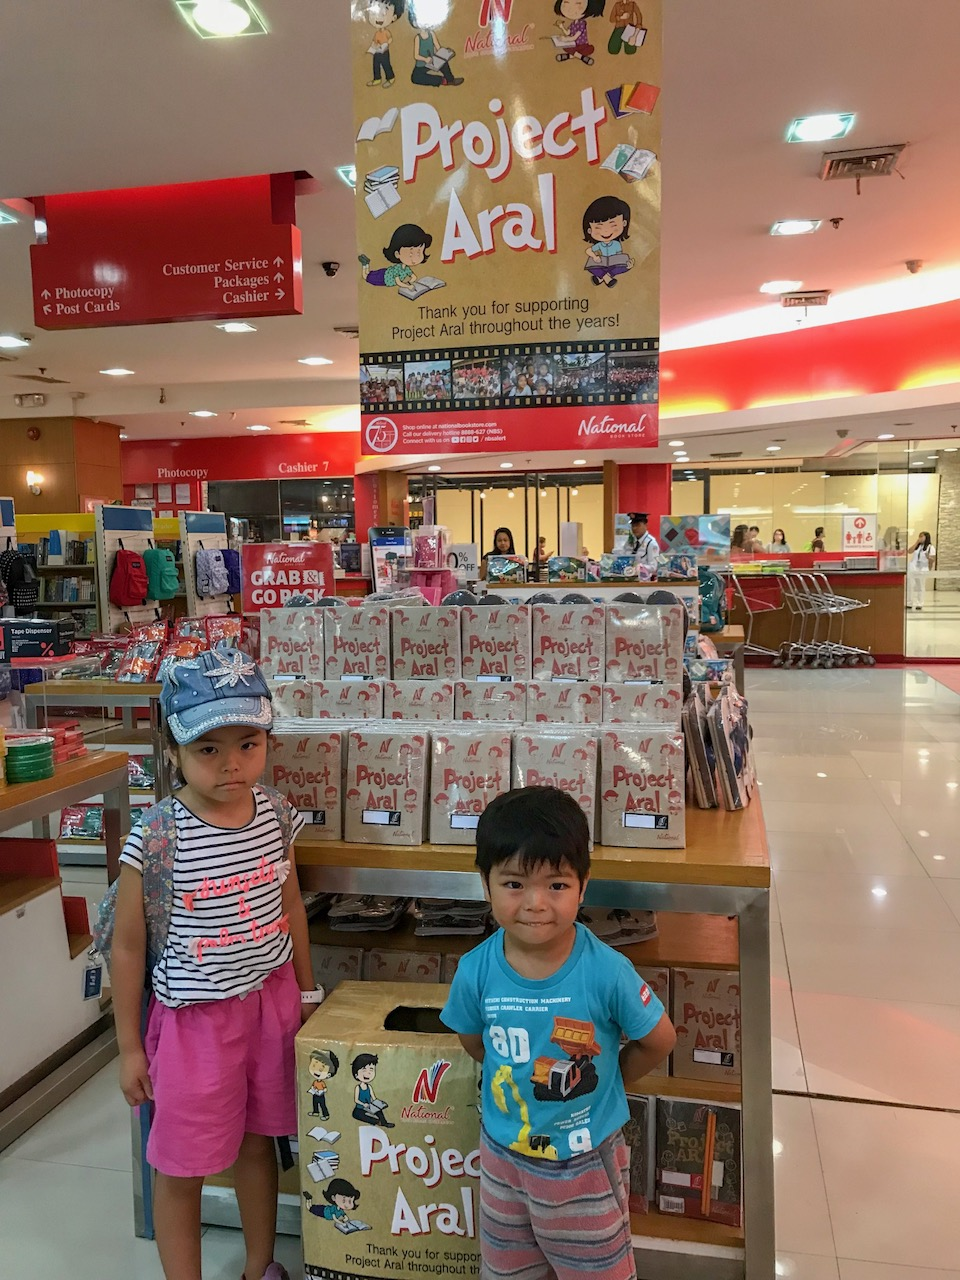 National BookstoreのProject Aral。30ペソでノート文具セットを購入し、子供たちの寄付ポストへ。